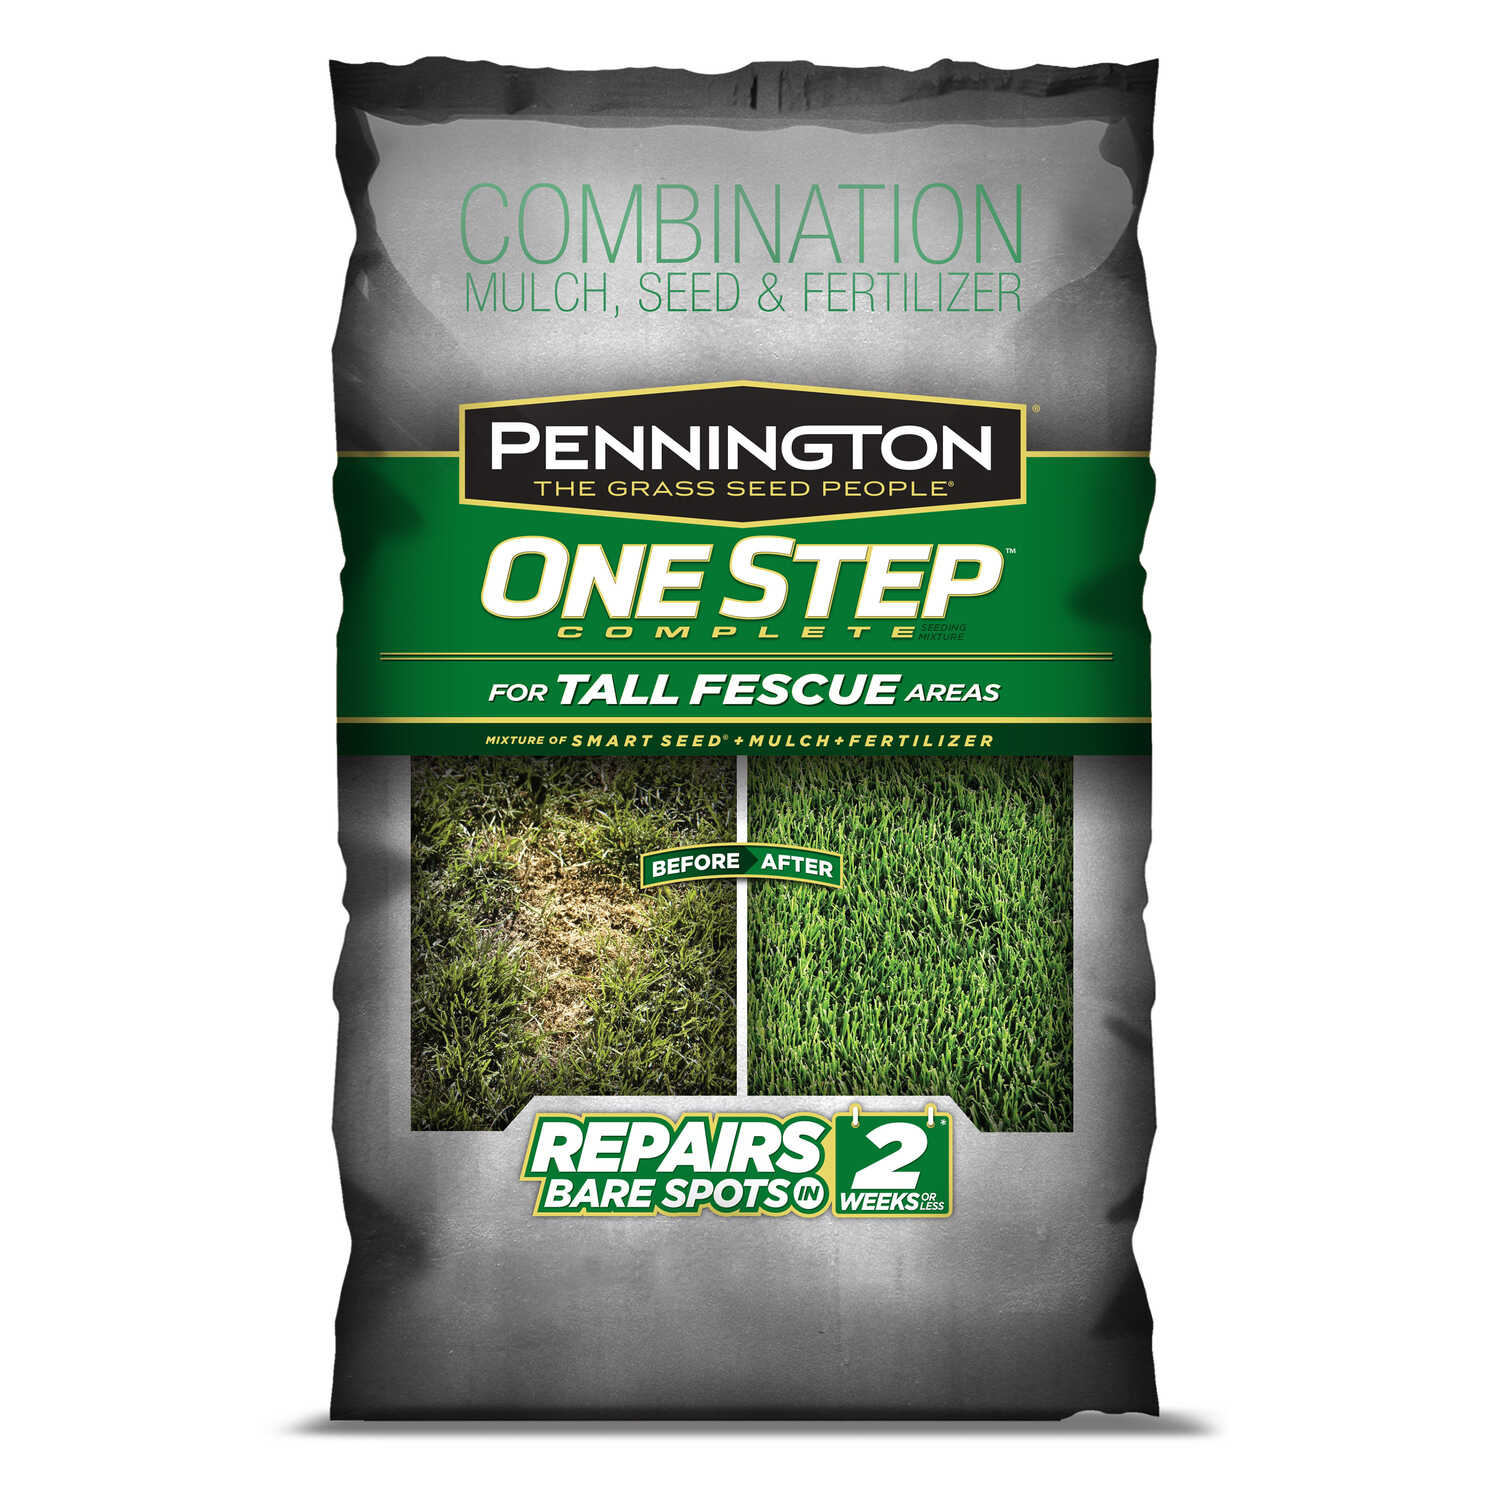 Pennington  One Step Complete  Tall Fescue  Seed, Mulch & Fertilizer  8.3 lb.